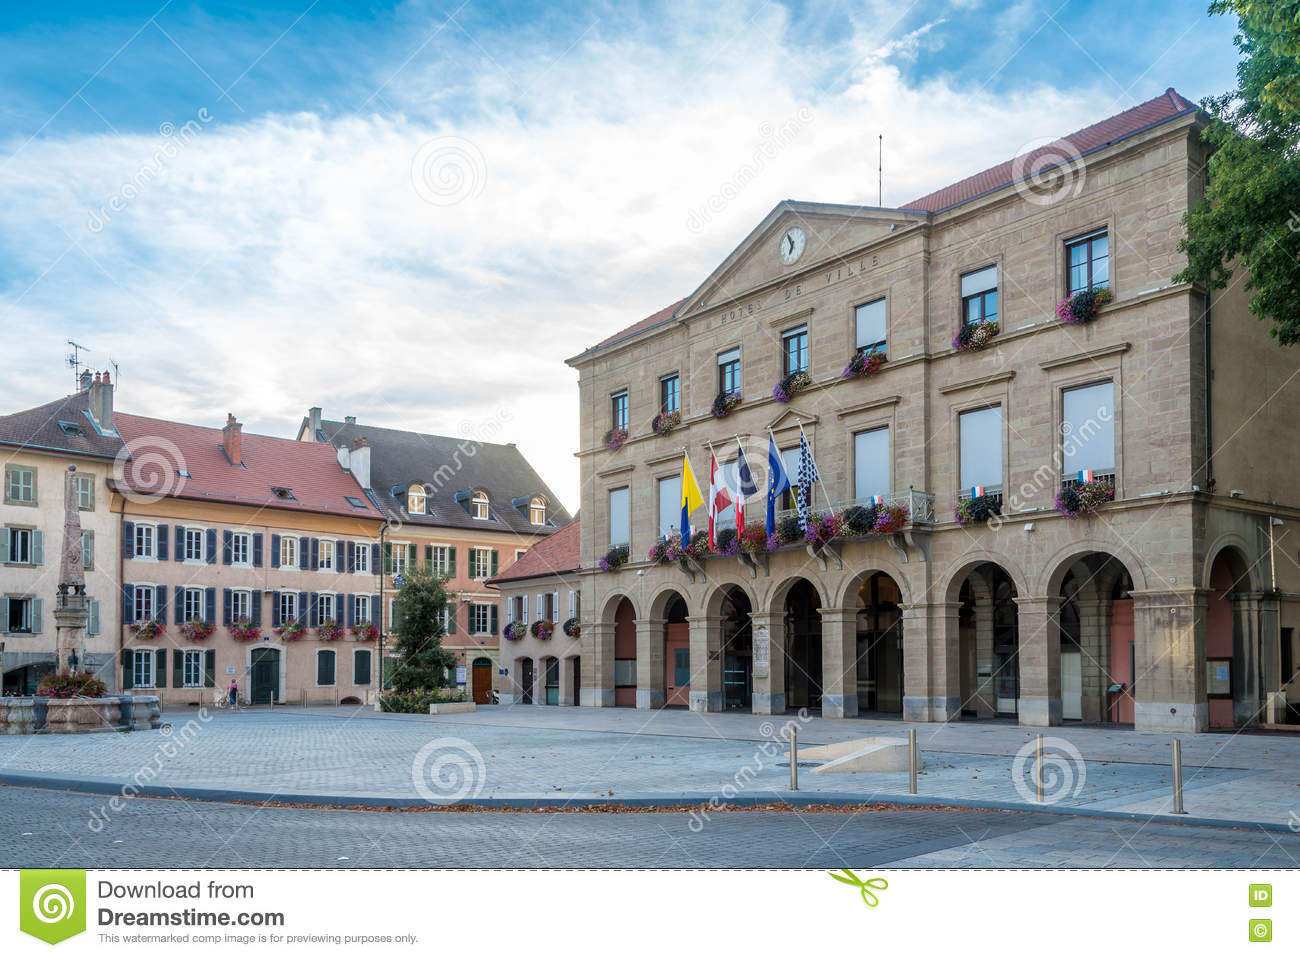 View at the Town hall in Thonon les Bains - France